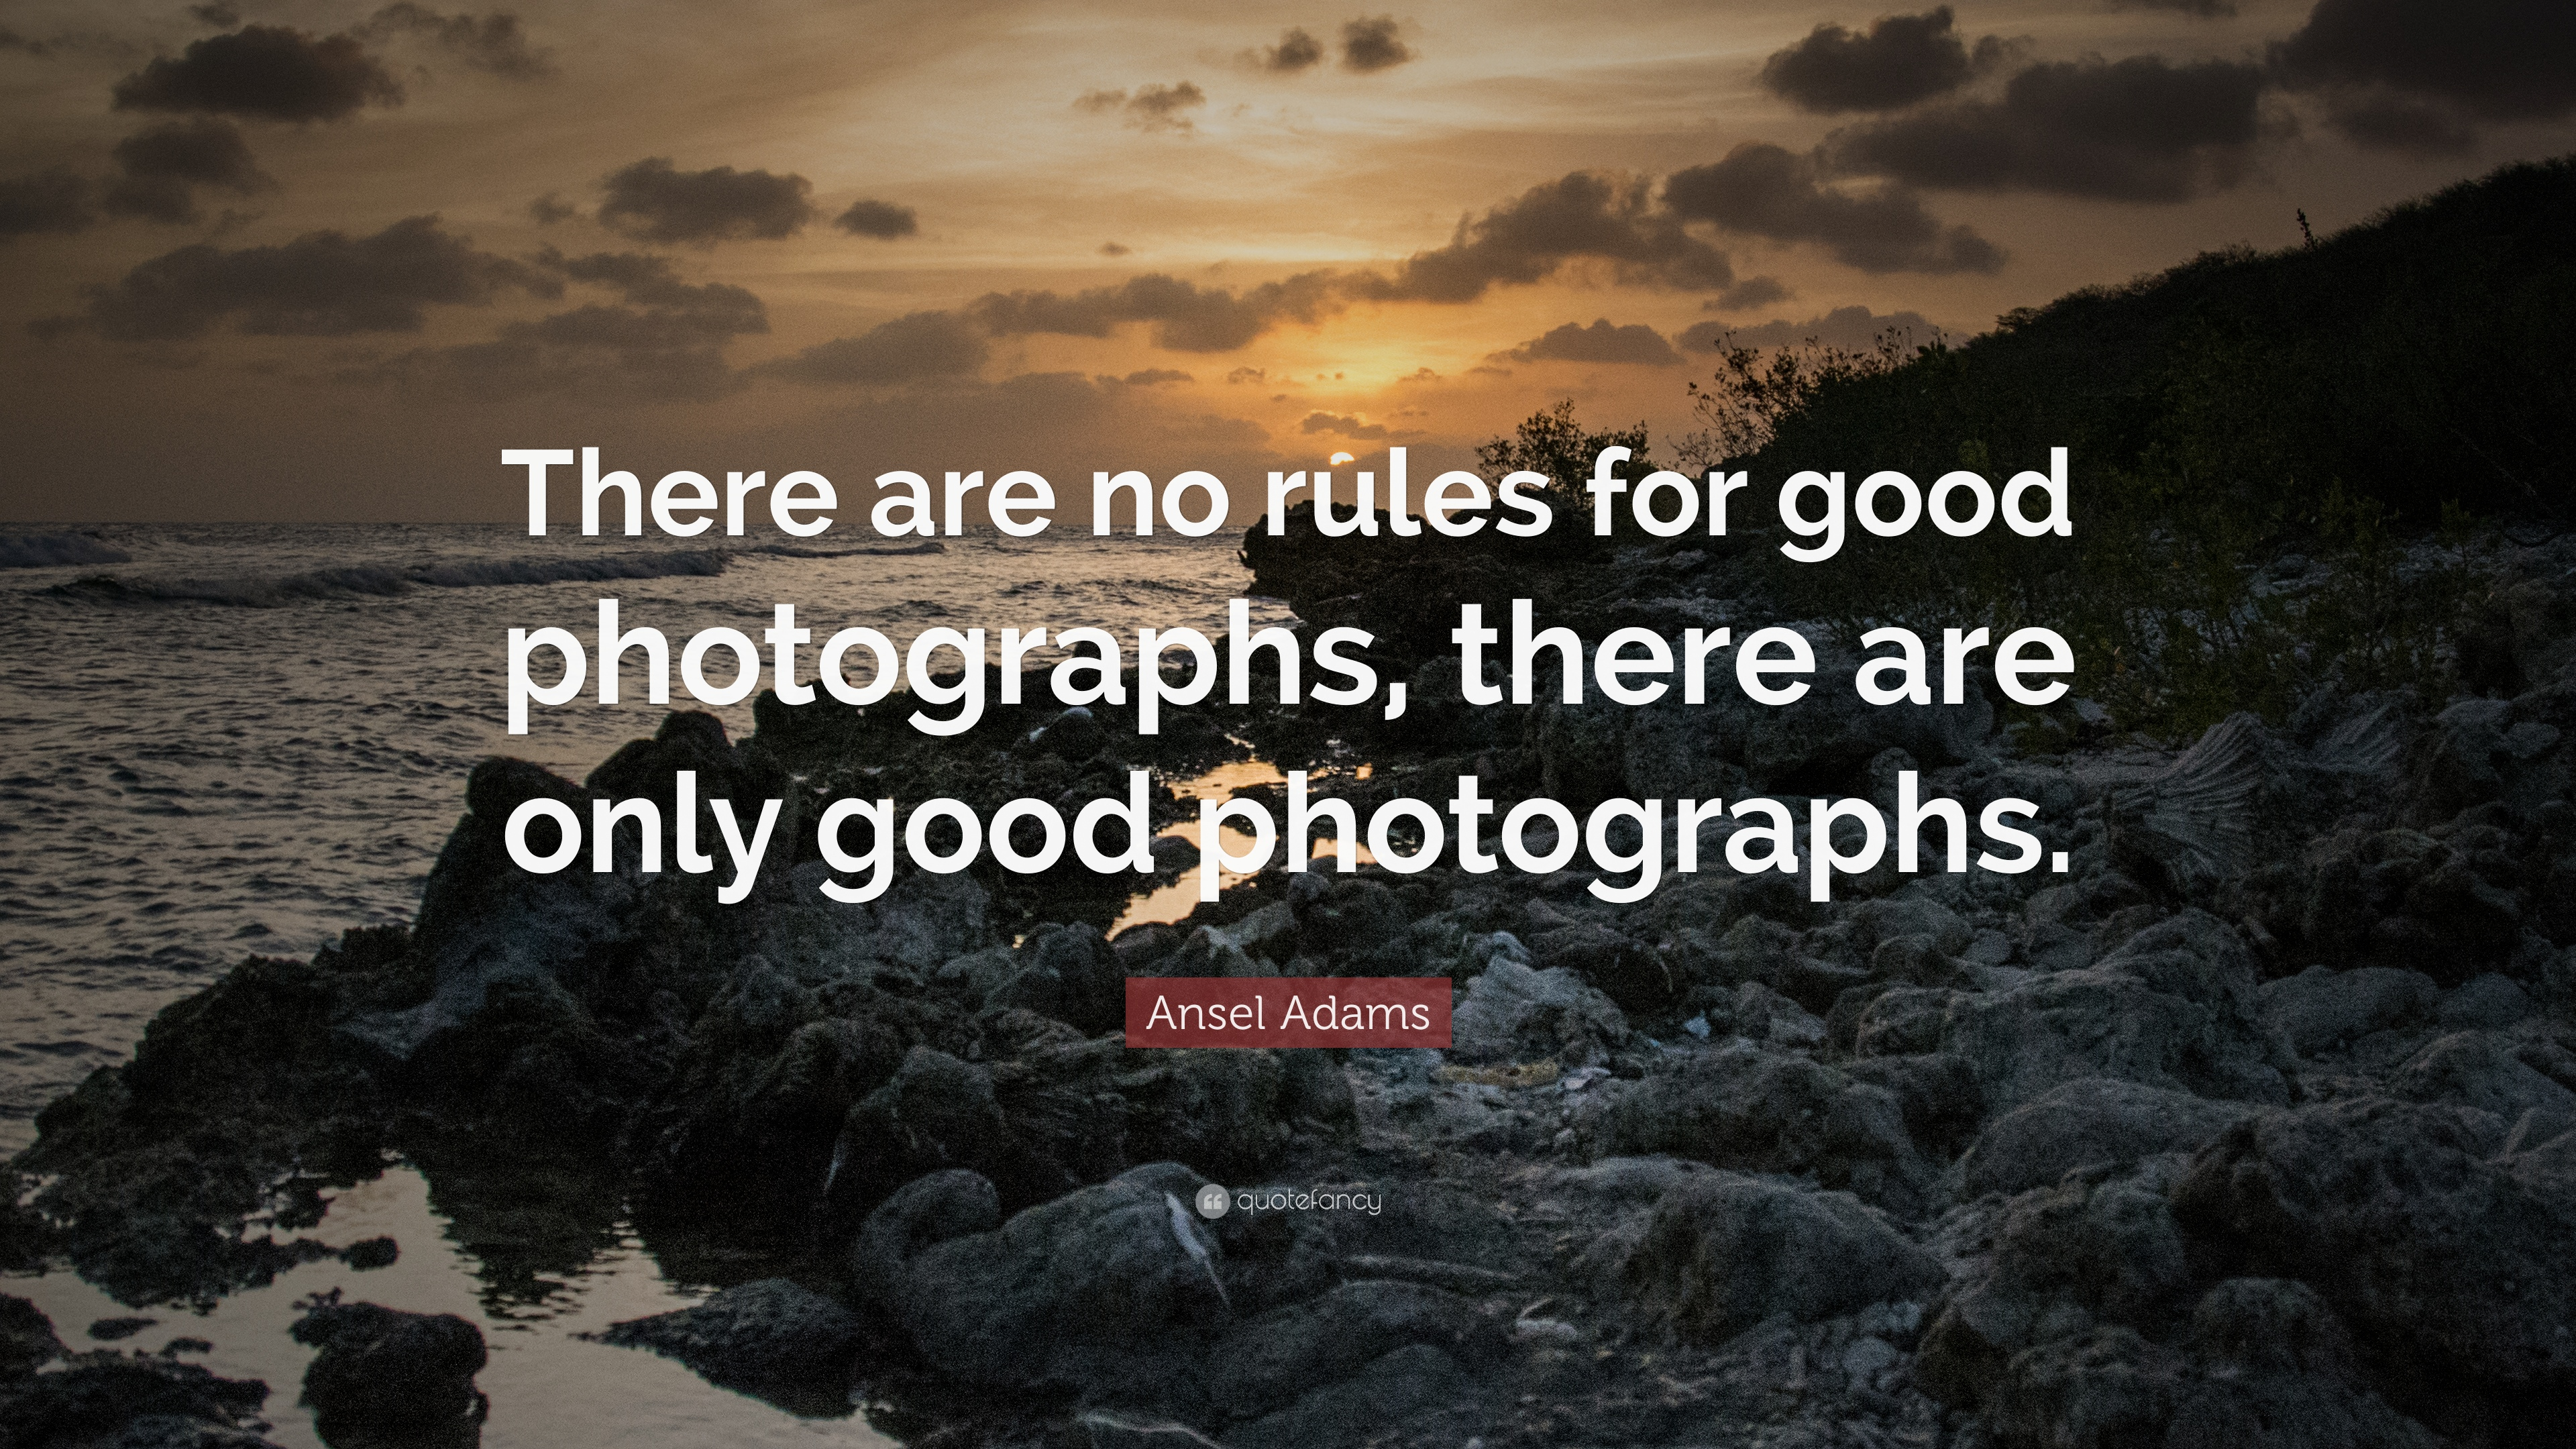 Photography Quotes Fascinating Photography Quotes 22 Wallpapers  Quotefancy